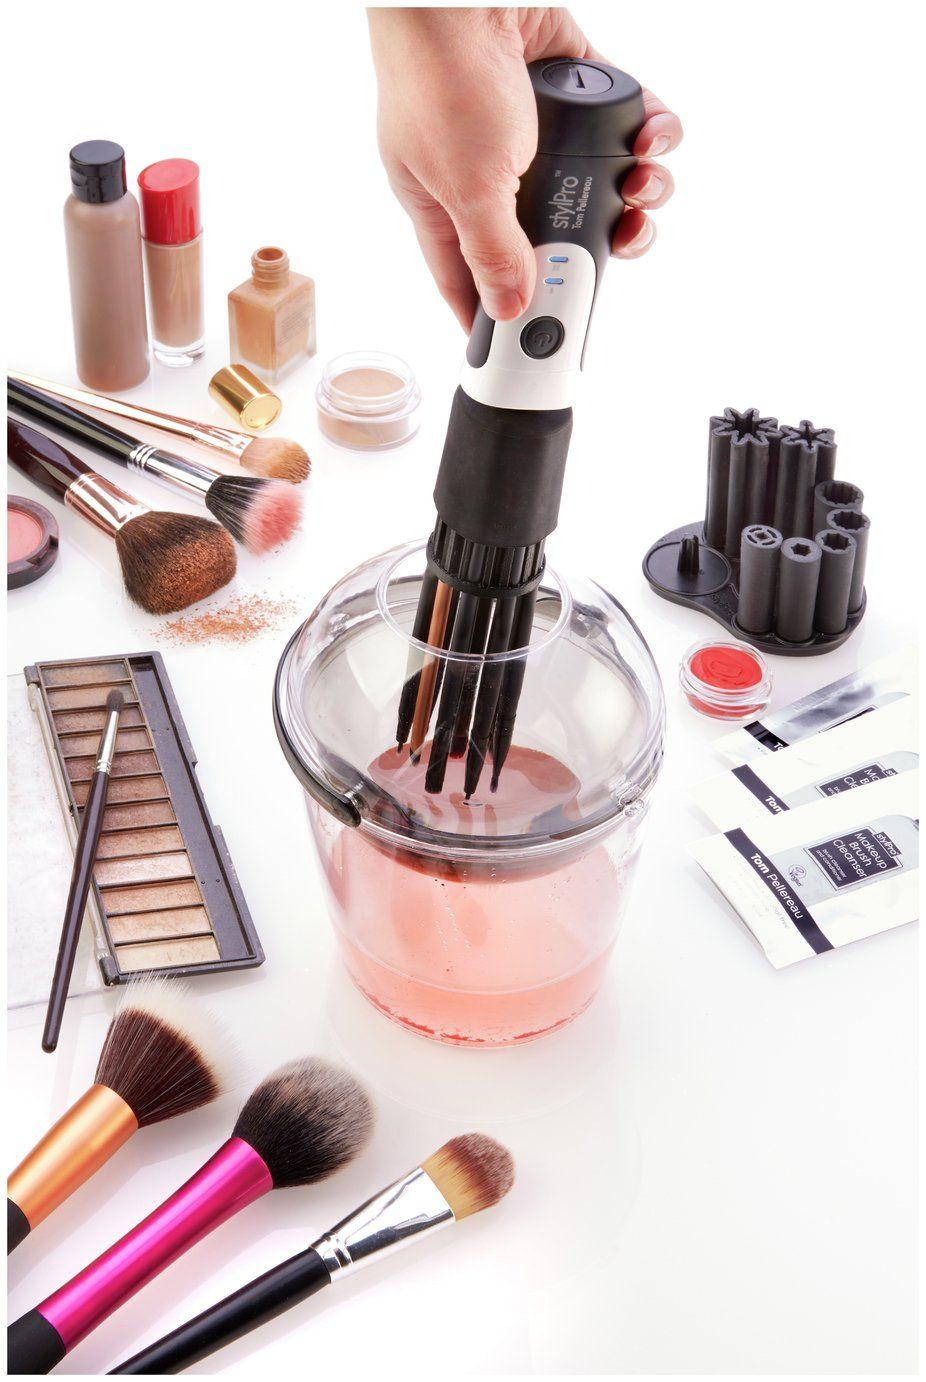 Photo of Buy StylPro Expert Make-up Brush Cleaner and Dryer | Limited stock Health and beauty